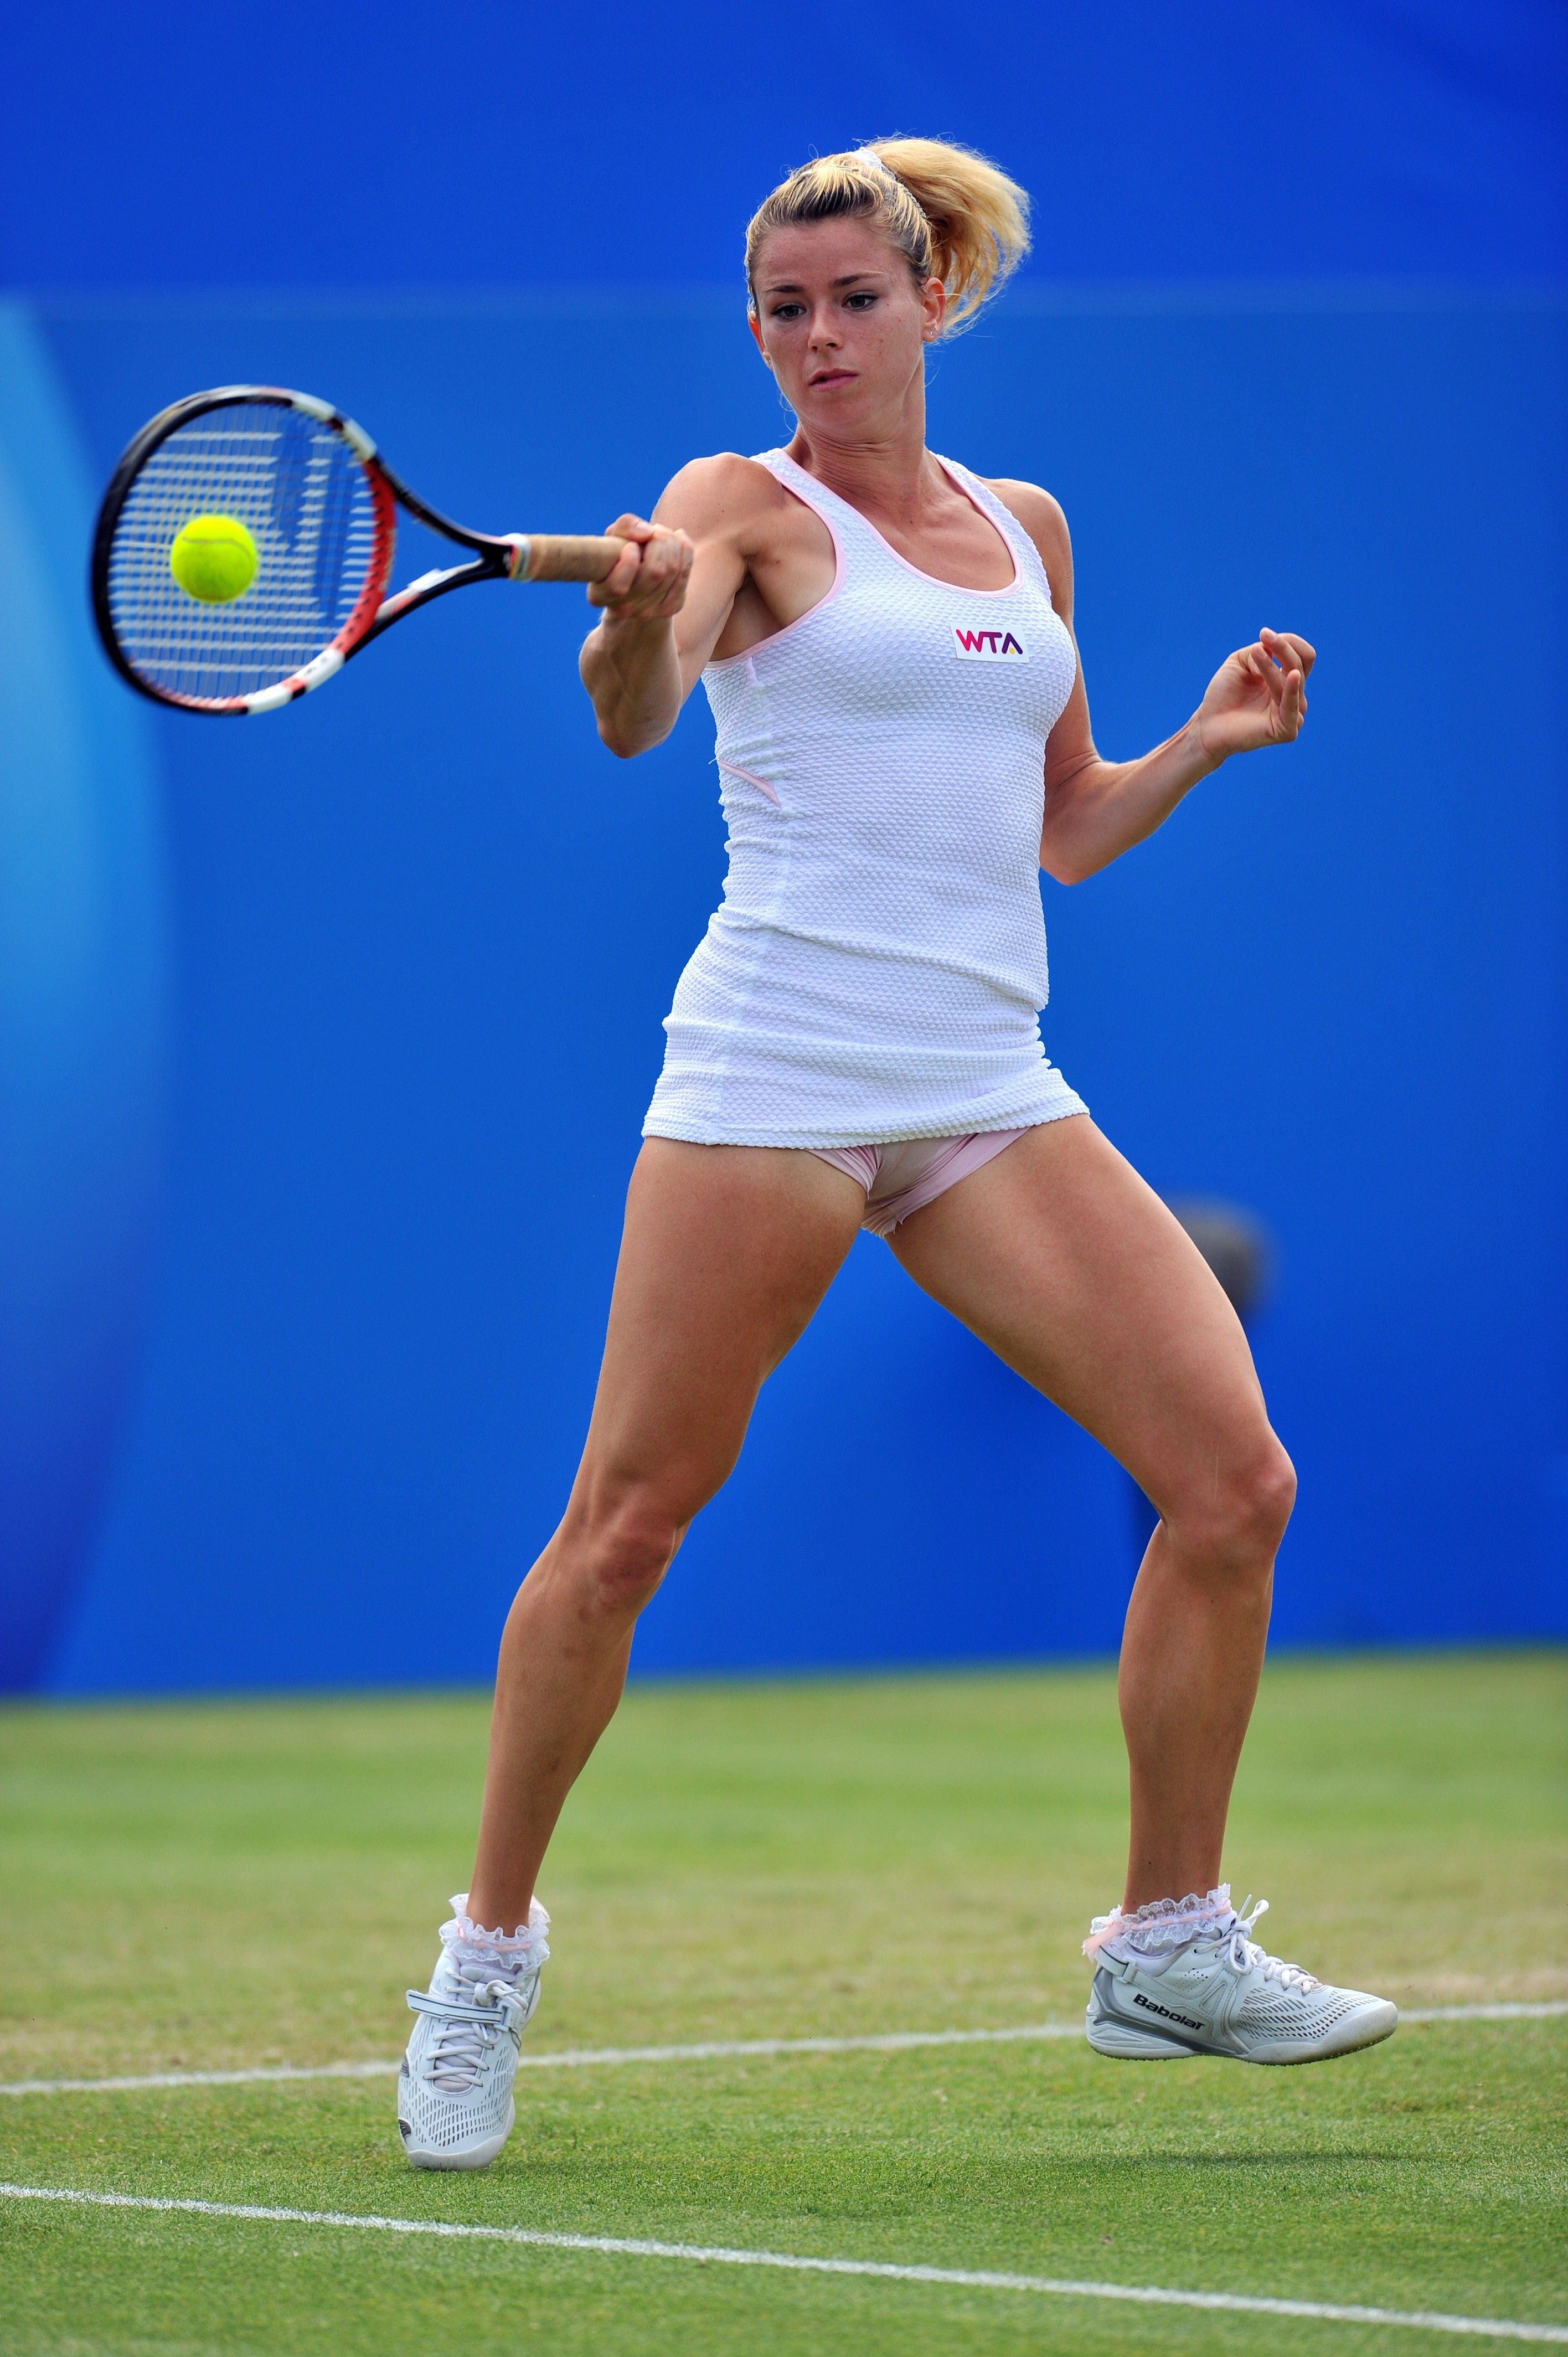 Free of tennis players upskirt